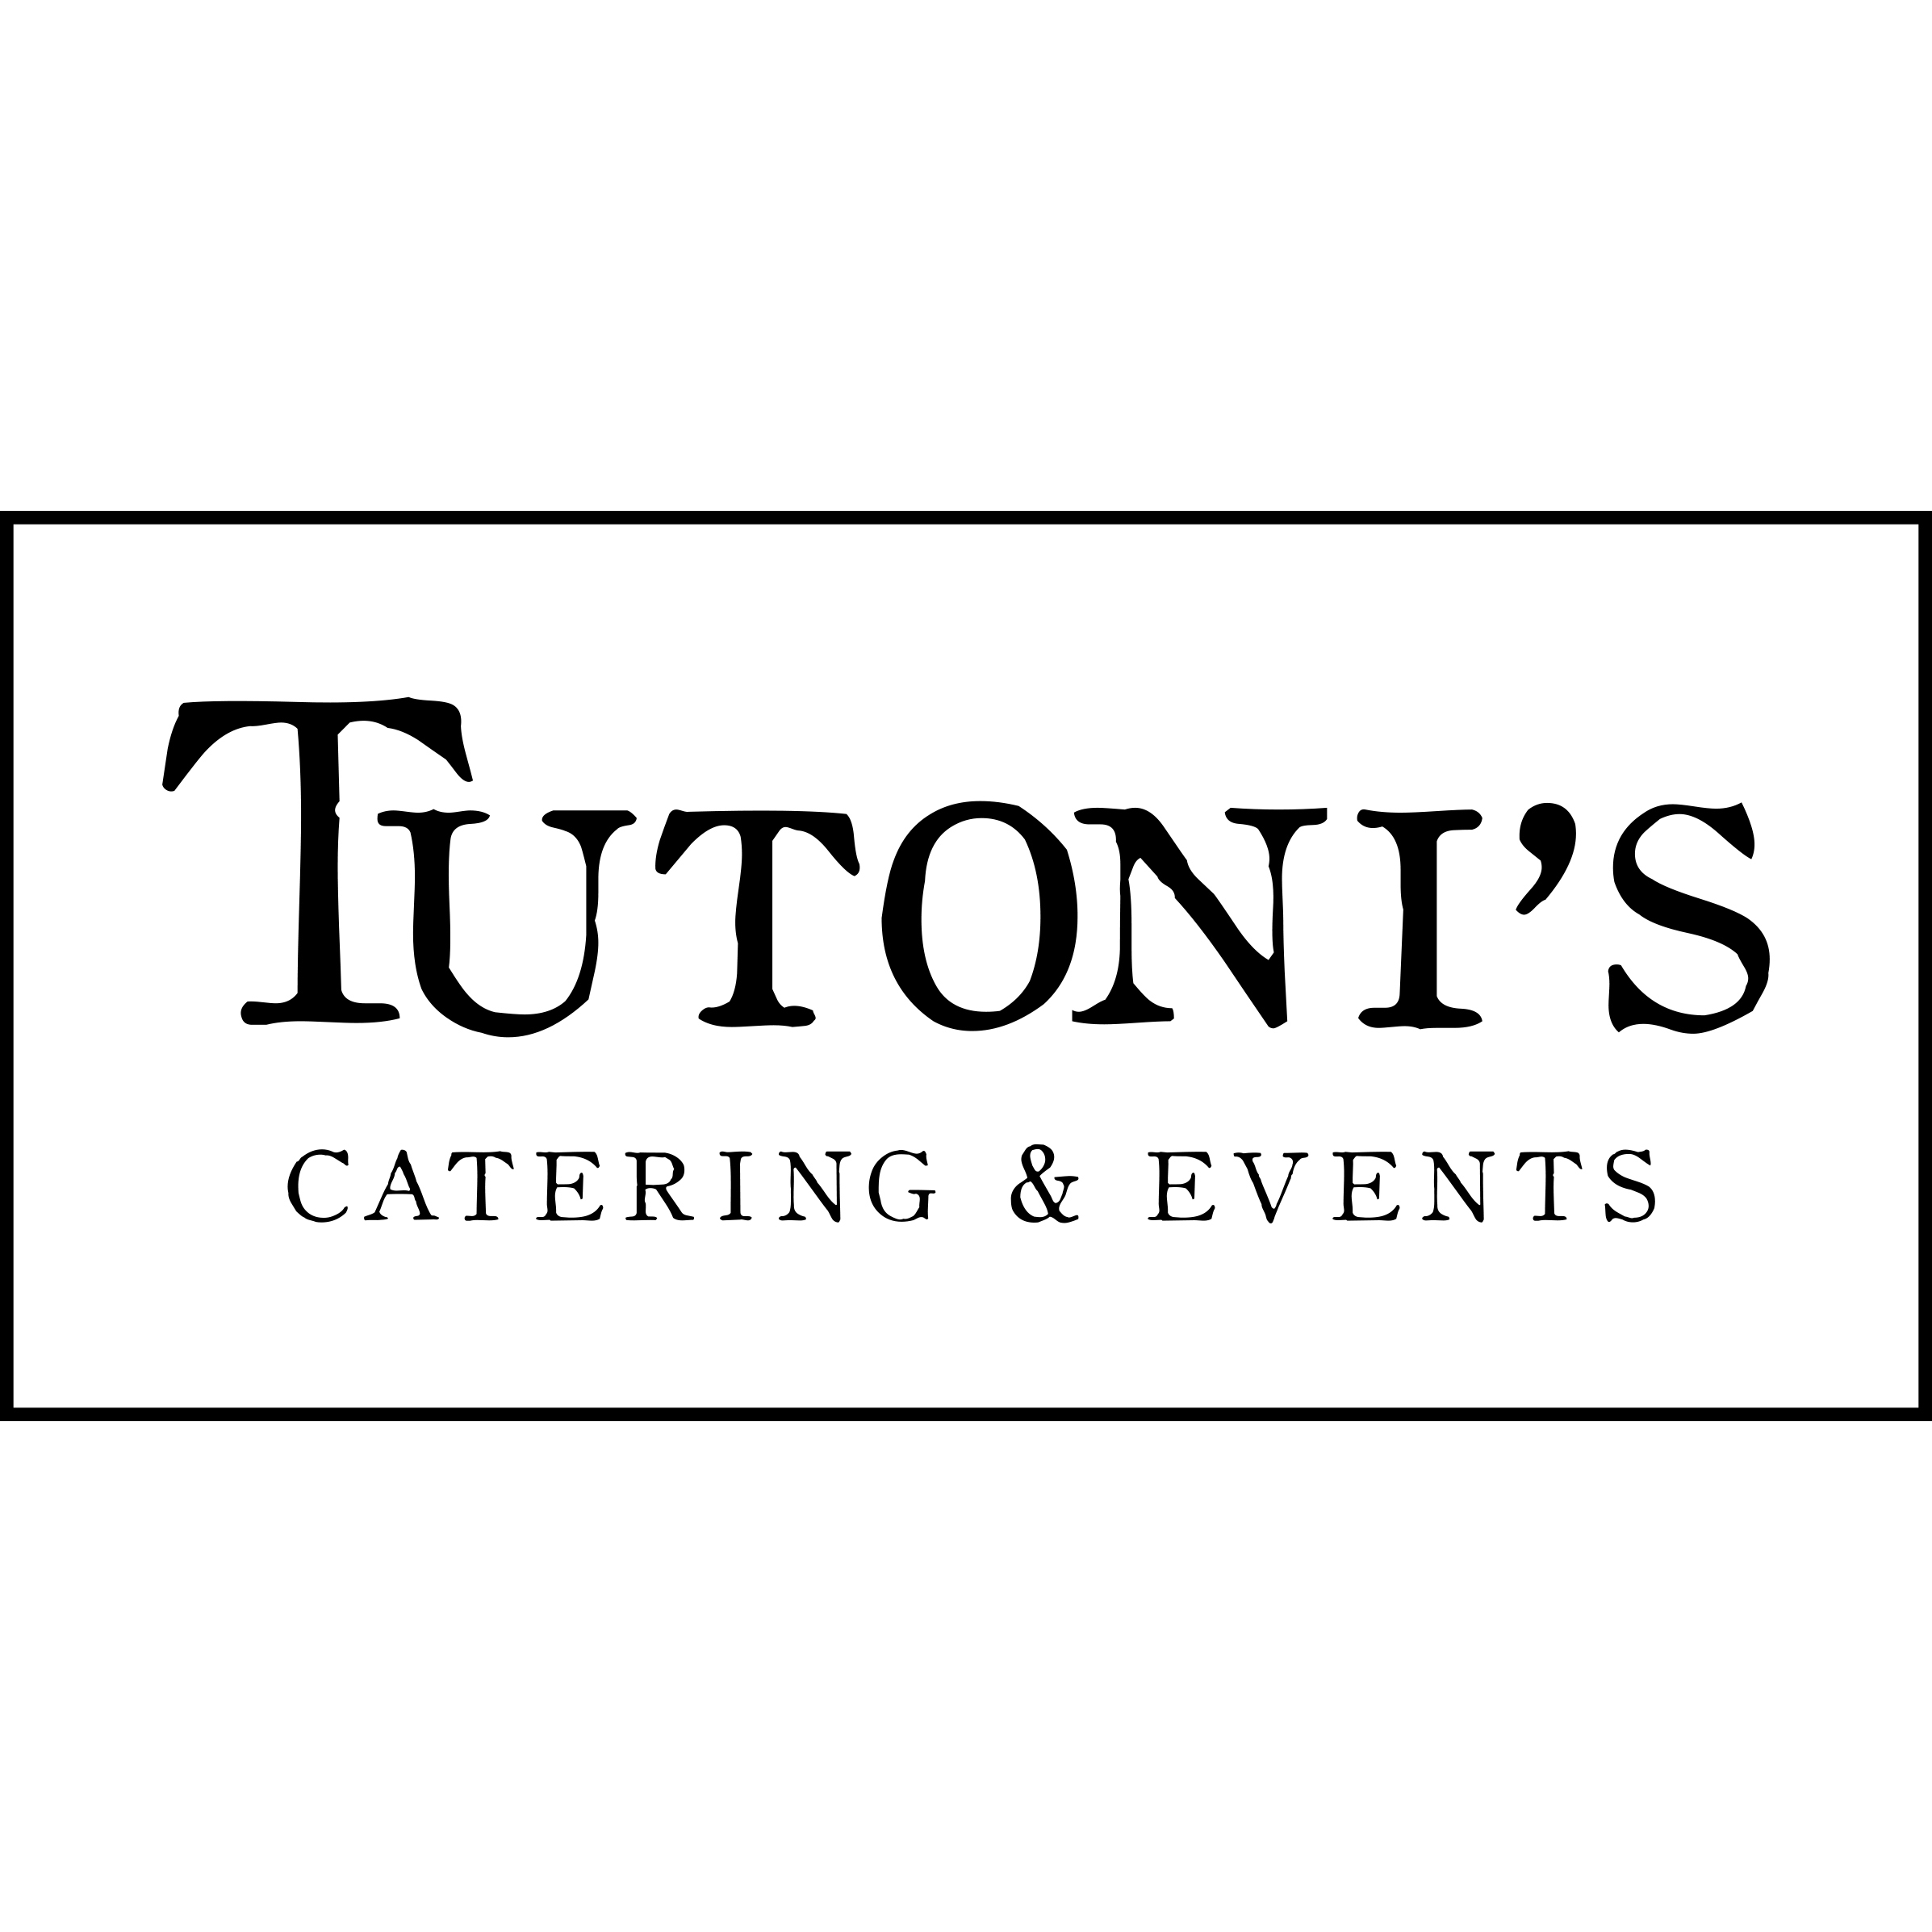 catering events logo square.jpg